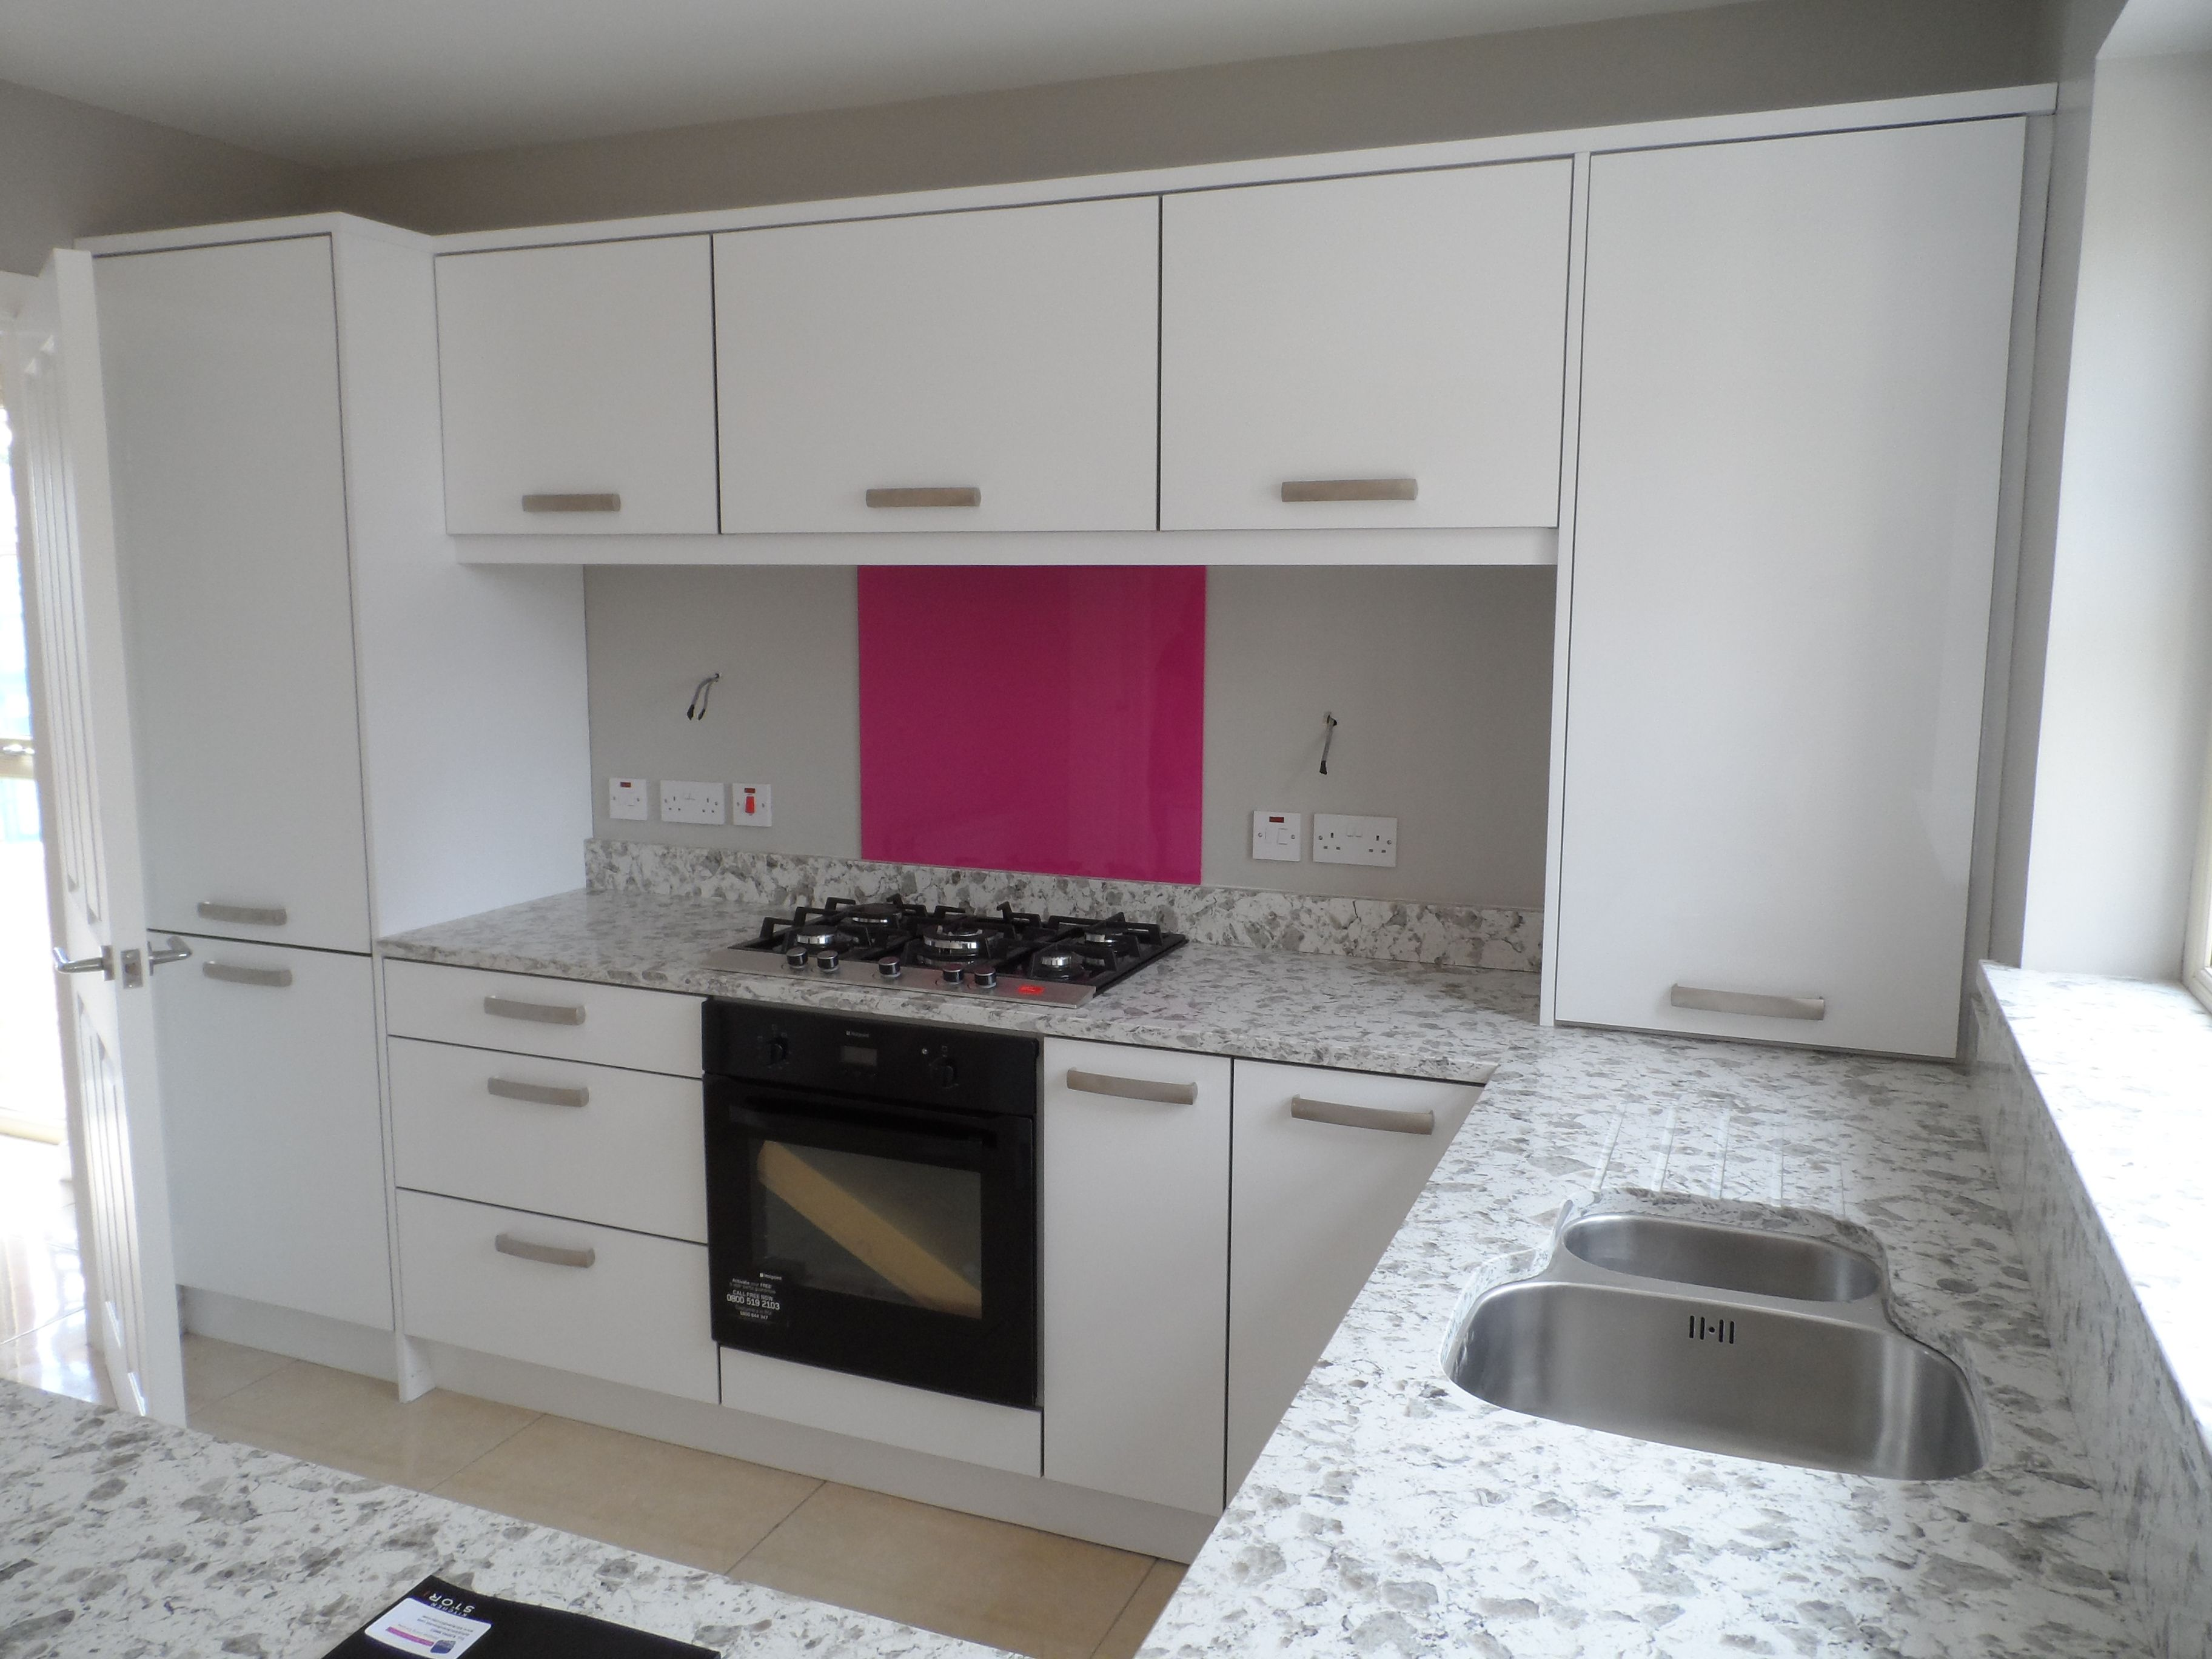 our show house kitchen with bespoke glass splashback giving that